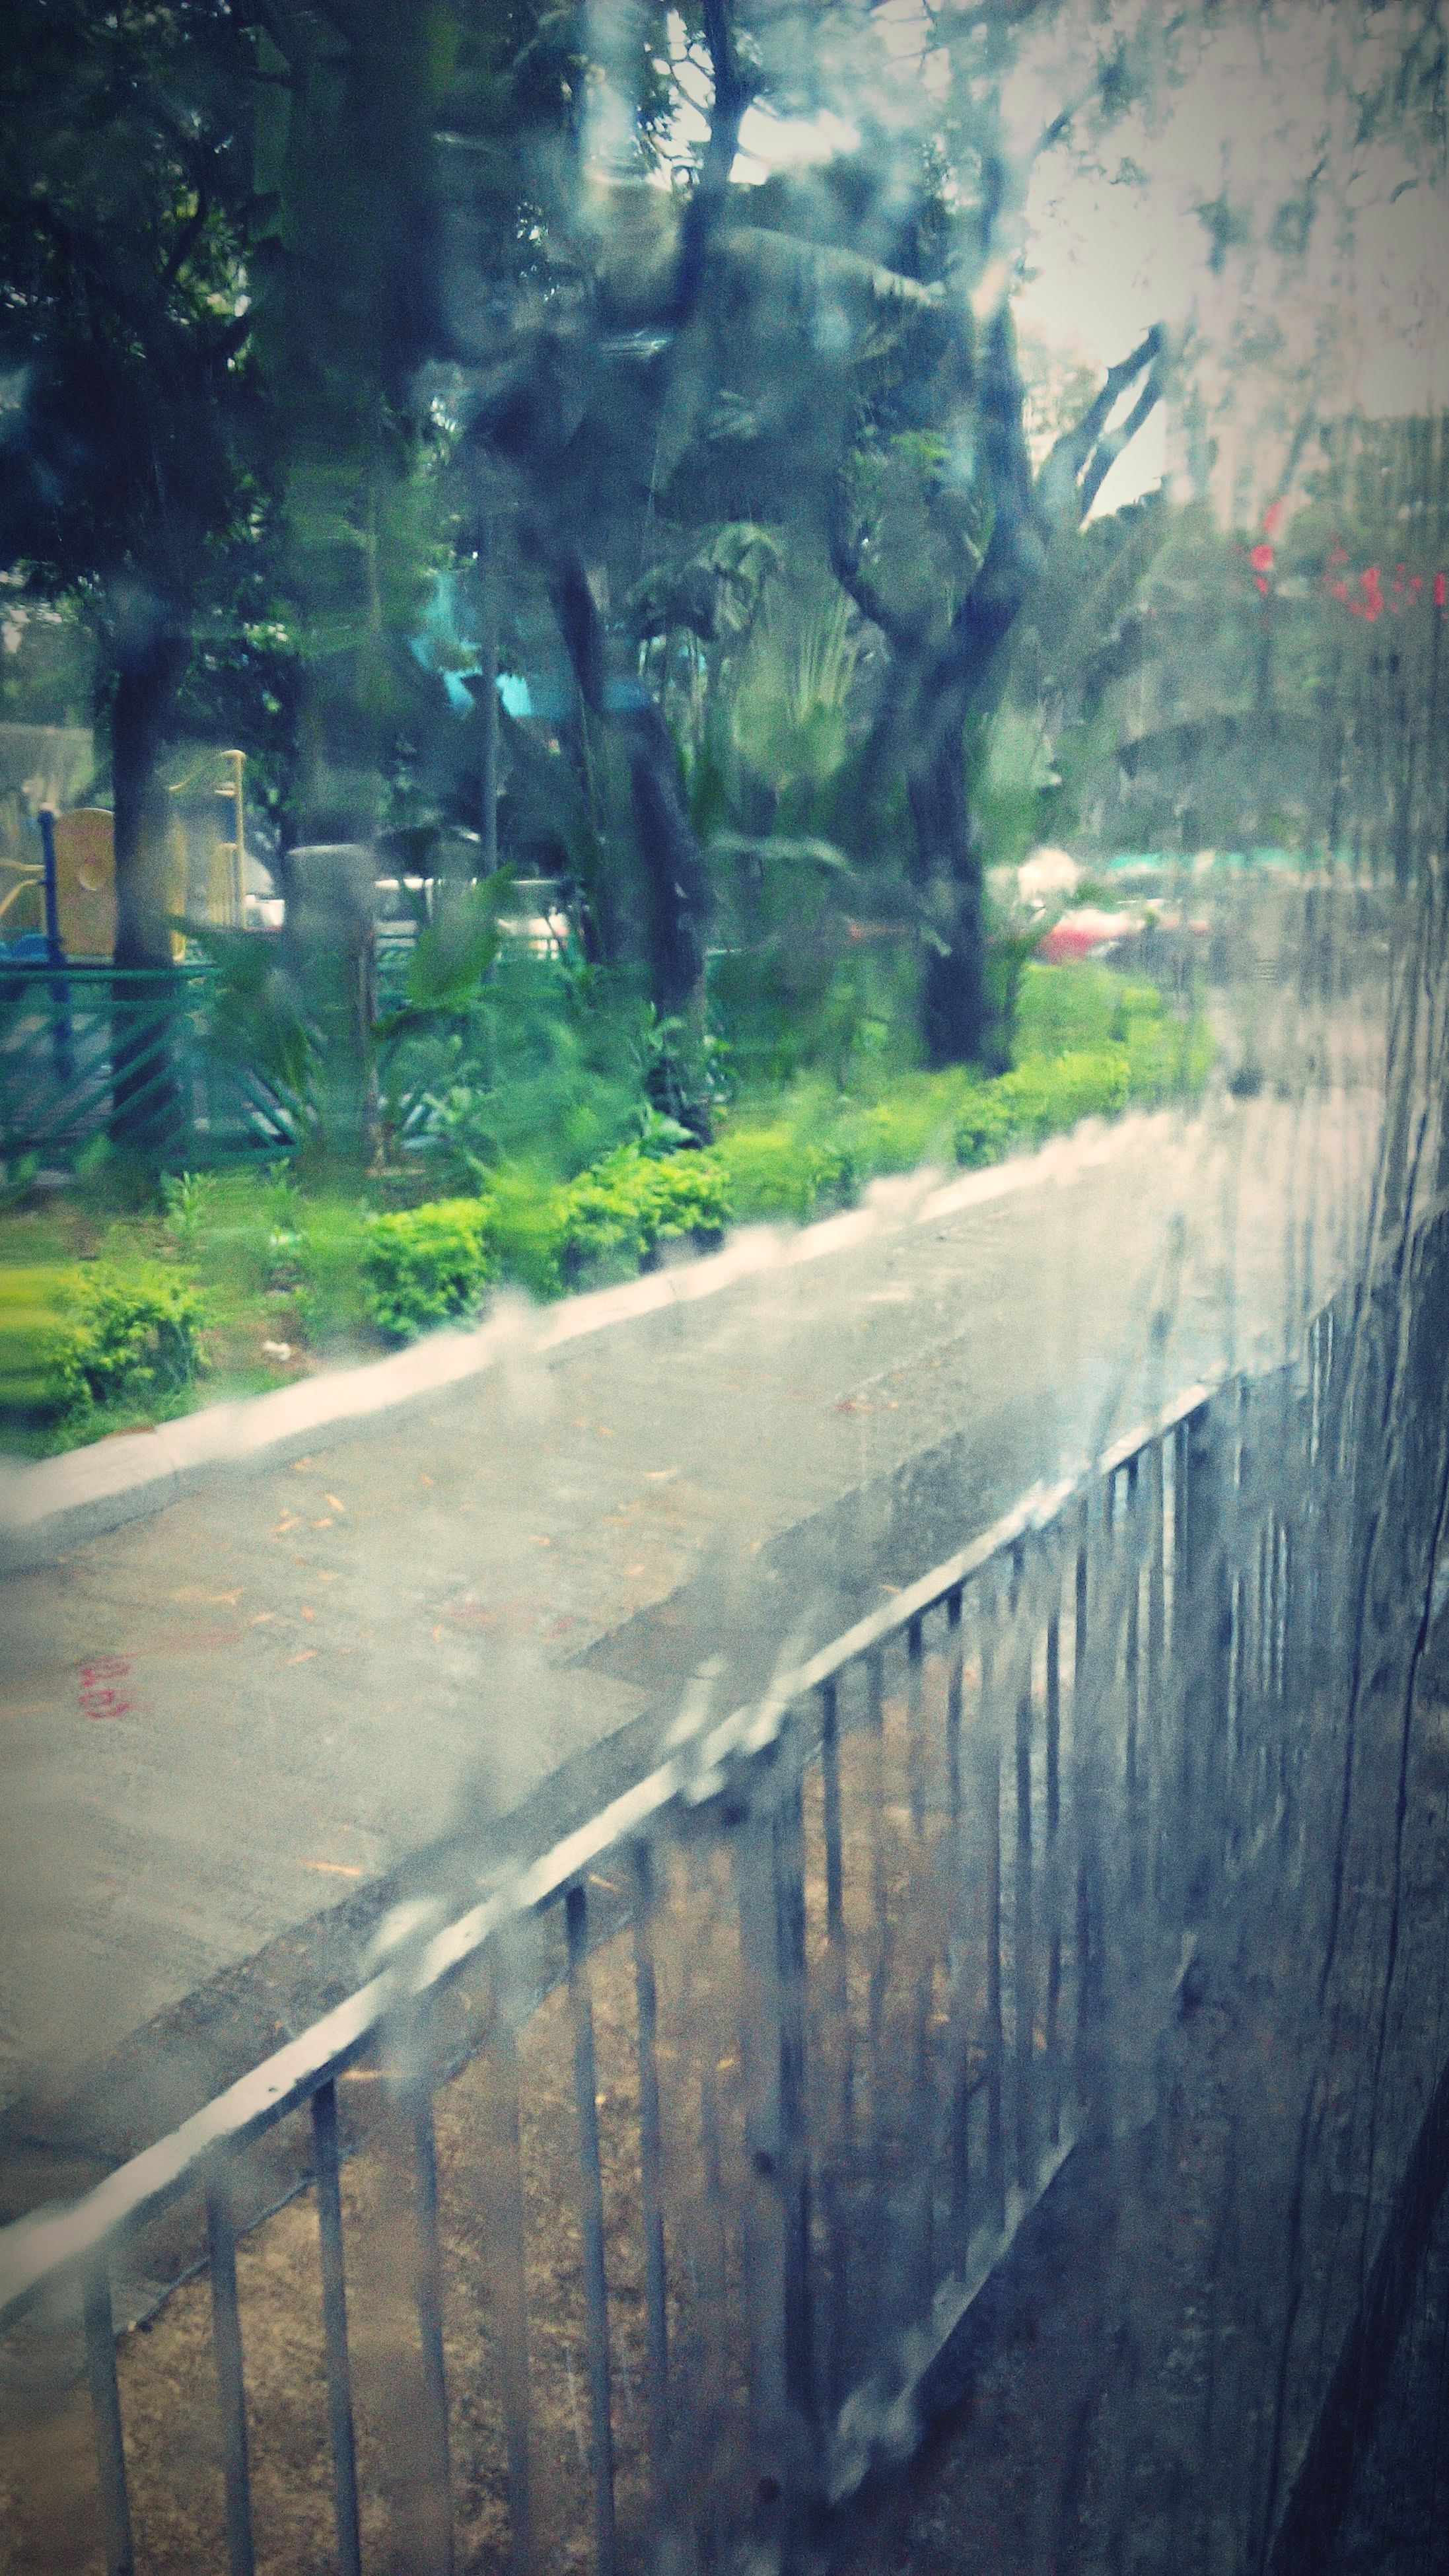 transportation, road, tree, the way forward, street, transparent, glass - material, wet, road marking, rain, water, car, no people, day, outdoors, window, vehicle interior, mode of transport, nature, reflection